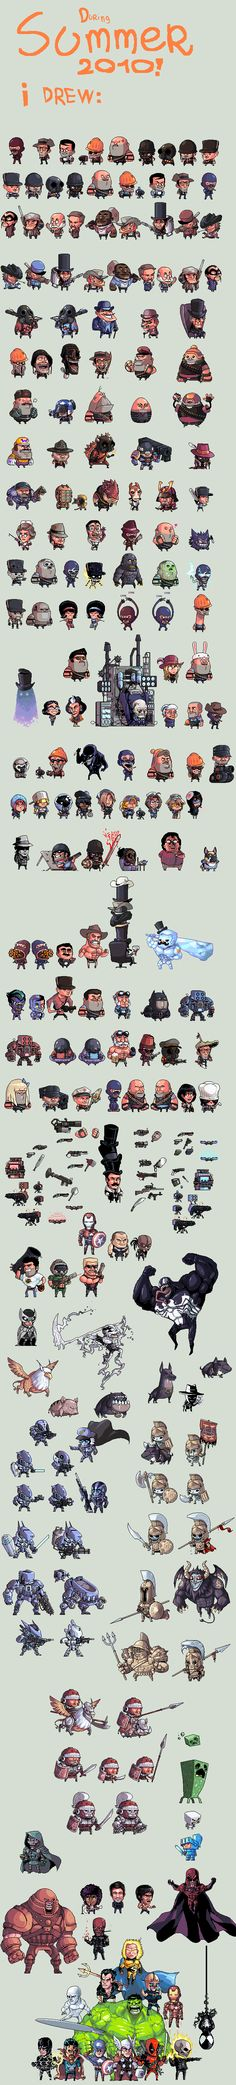 Nice reference for character style development Productive Summer pixel art by Shwig - Team Fortress Mass Effect, Venom, Minecraft, Avengers. Game Design, Web Design, Pixel Characters, Cute Characters, Game Character, Character Concept, How To Pixel Art, 8bit Art, Pixel Art Games